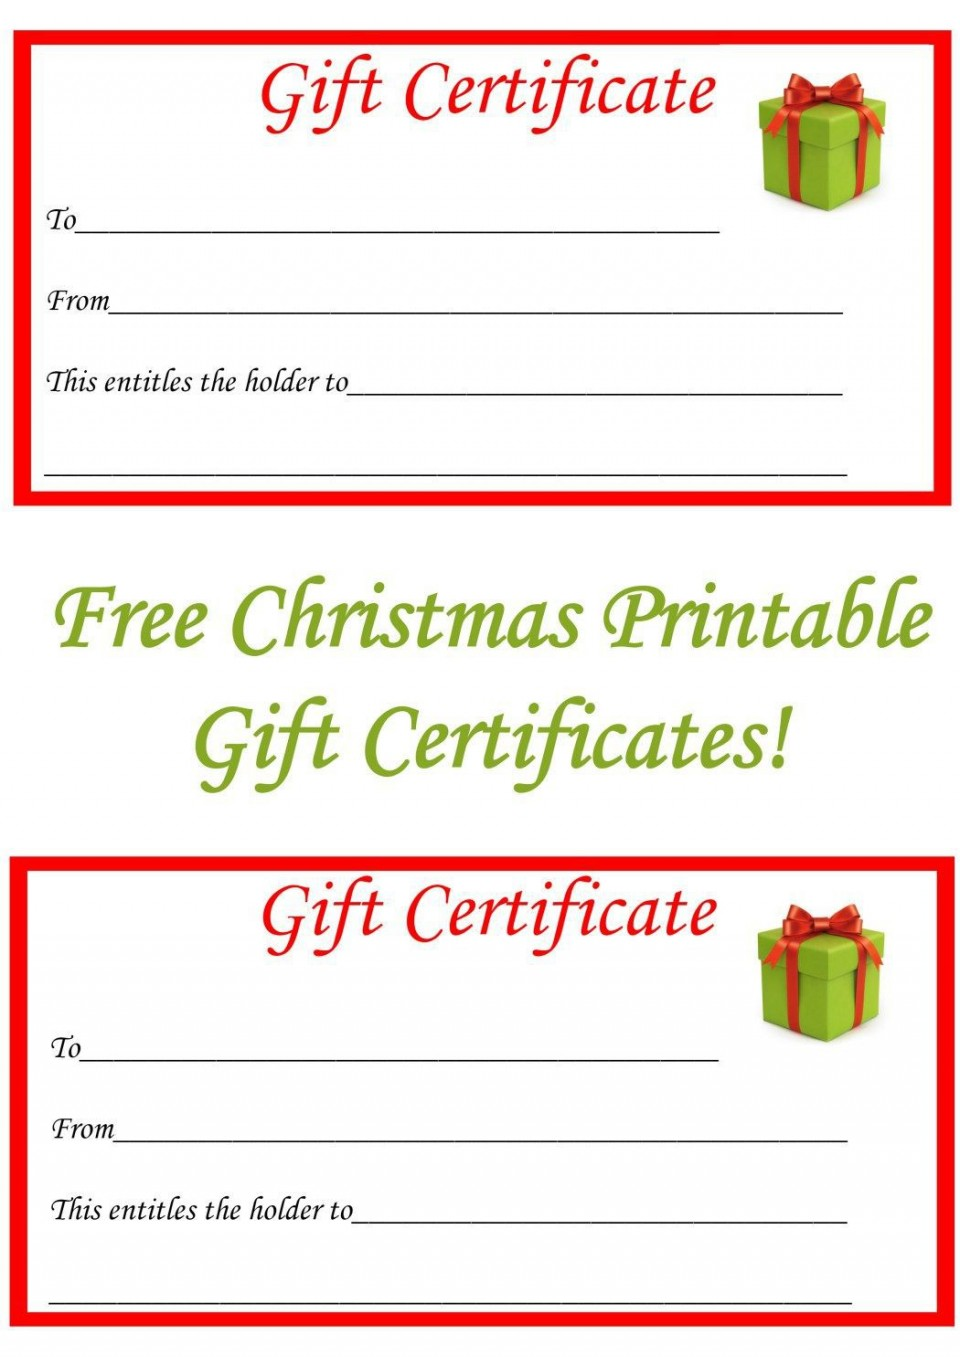 004 Dreaded Template For Christma Gift Certificate Free High Resolution  Voucher Uk Editable Download Microsoft Word960